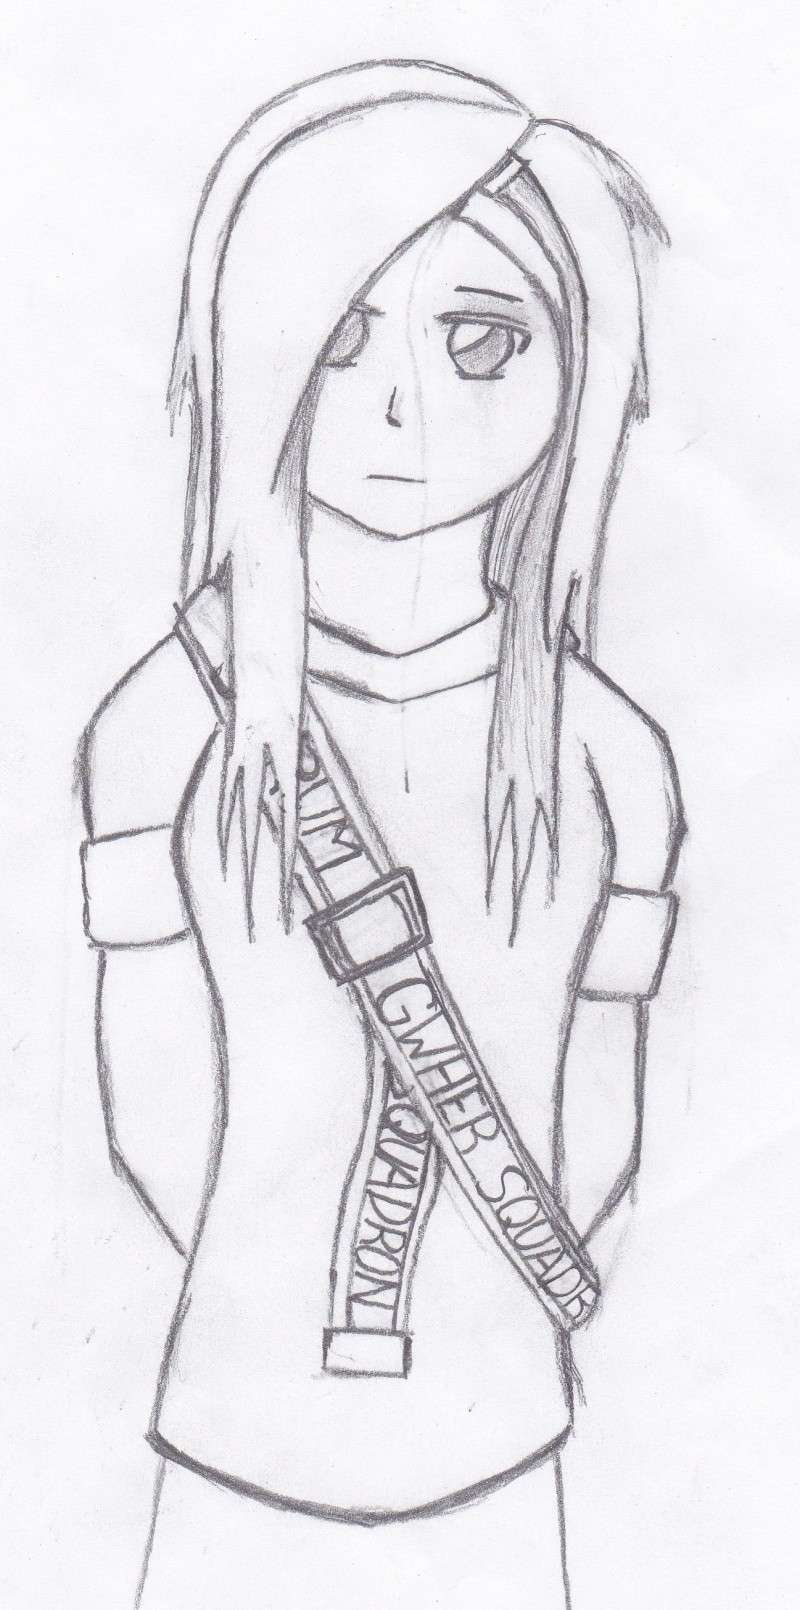 All of my crappy drawings as of late Pictur10